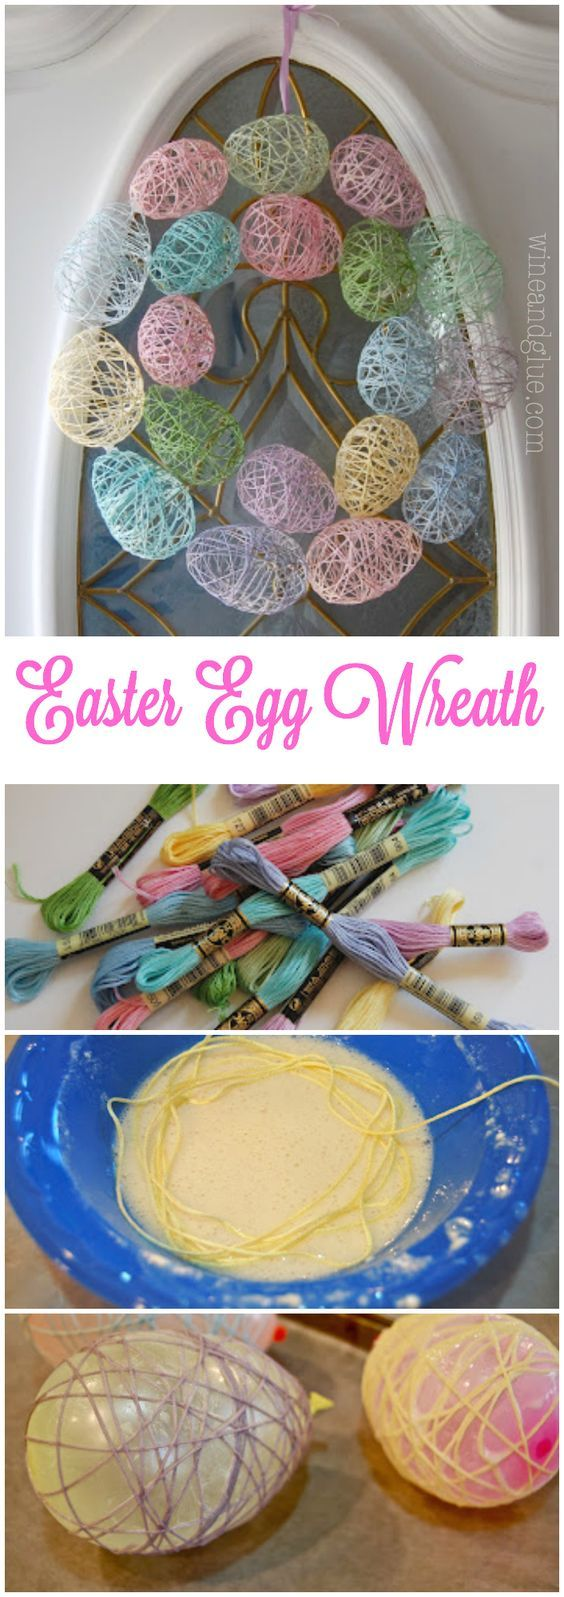 Easter Egg Wreath | A gorgeous wreath made from simple supplies!: